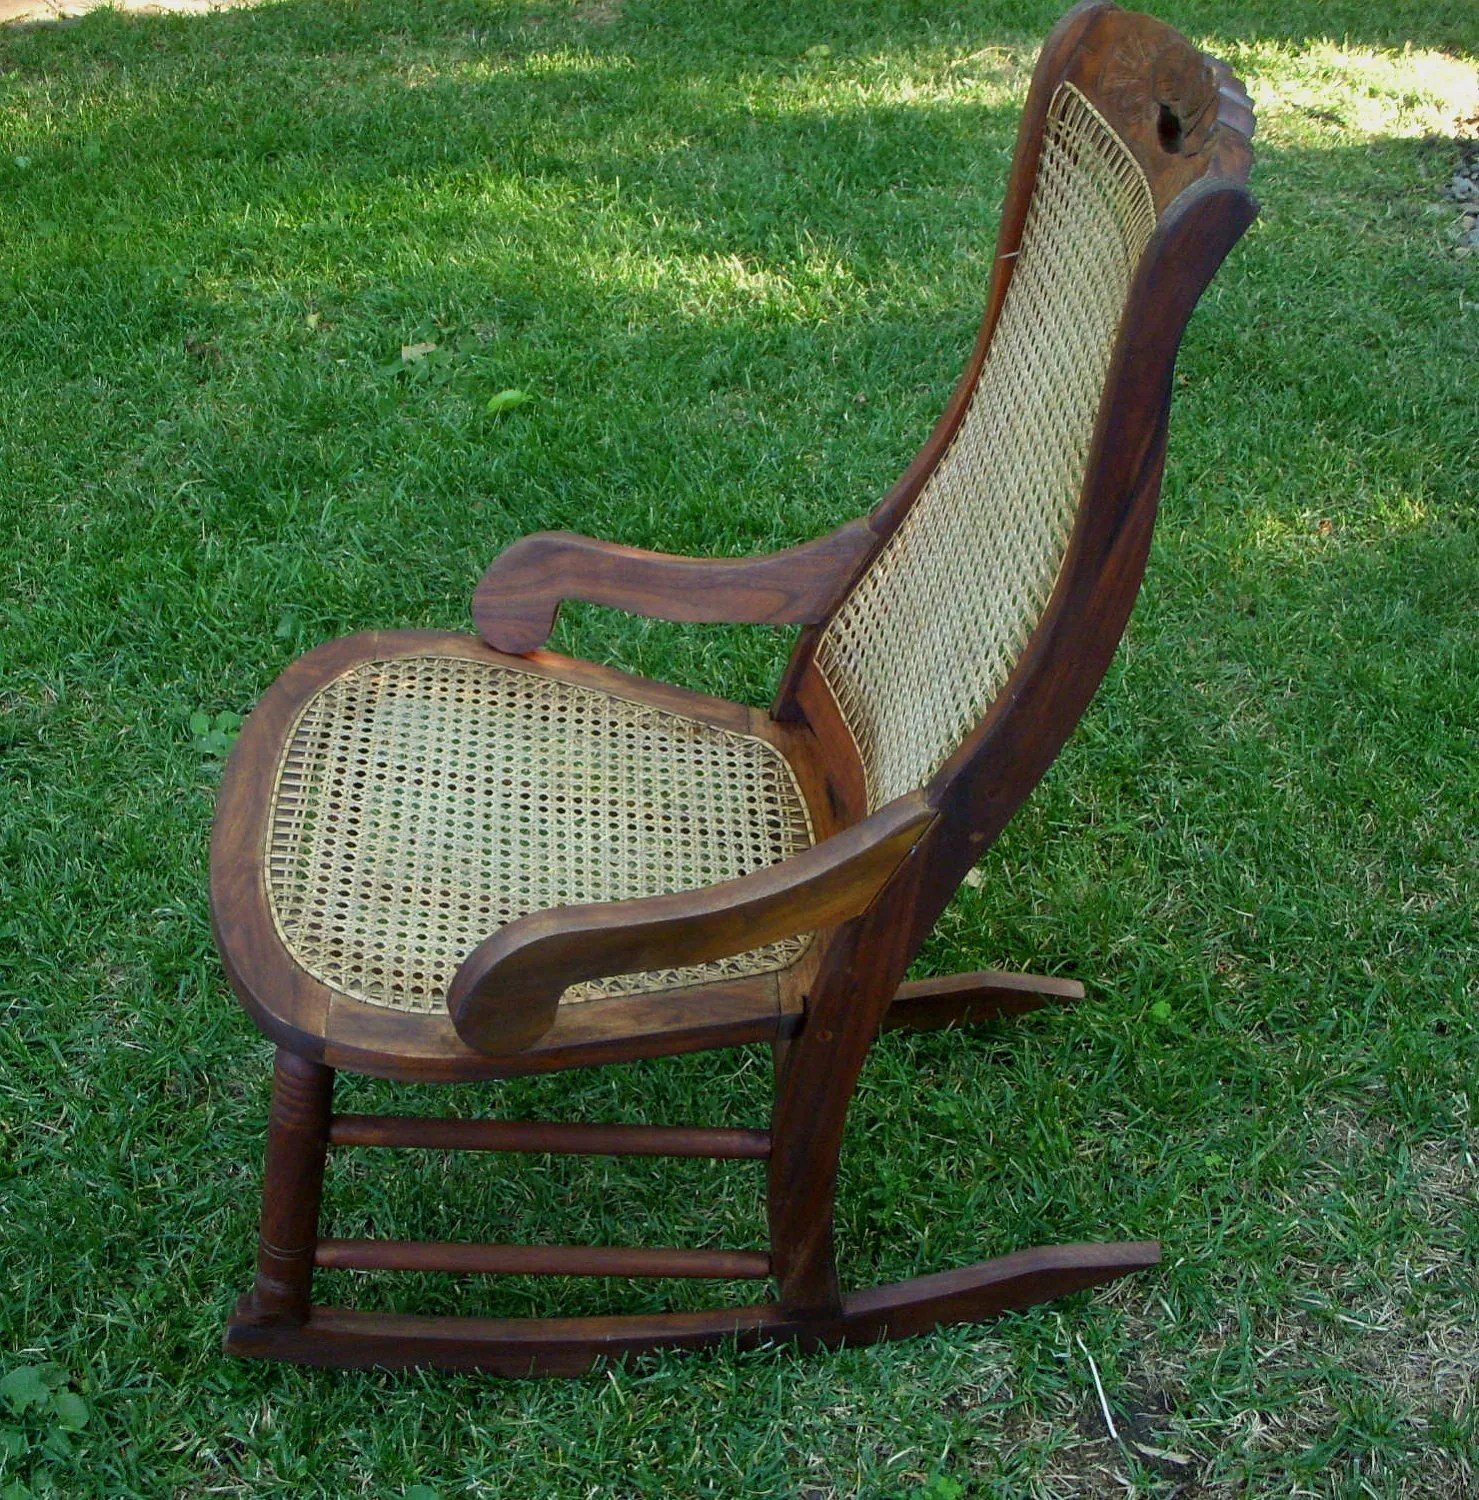 Vintage Wooden Chairs Antique Rocking Chair Wood And Cane Seat By Honeystreasures